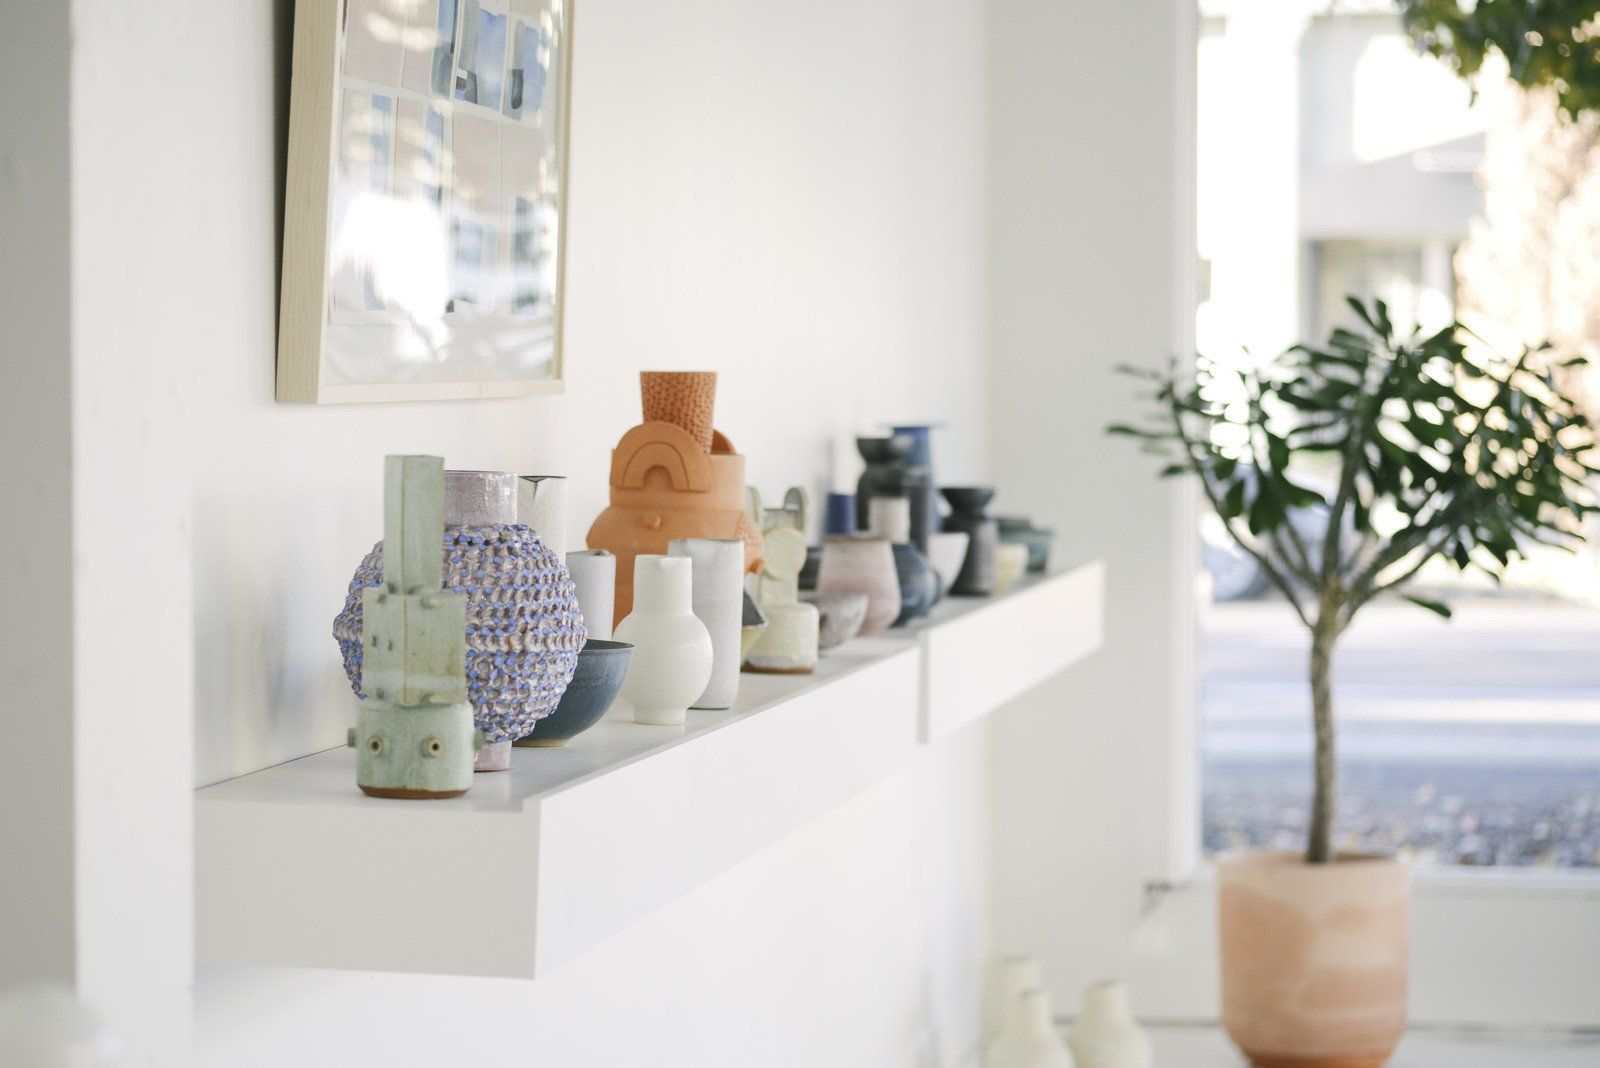 Photo 7 of 12 in The Carefully-Curated Spartan Shop Expands Into a Creative Consultancy